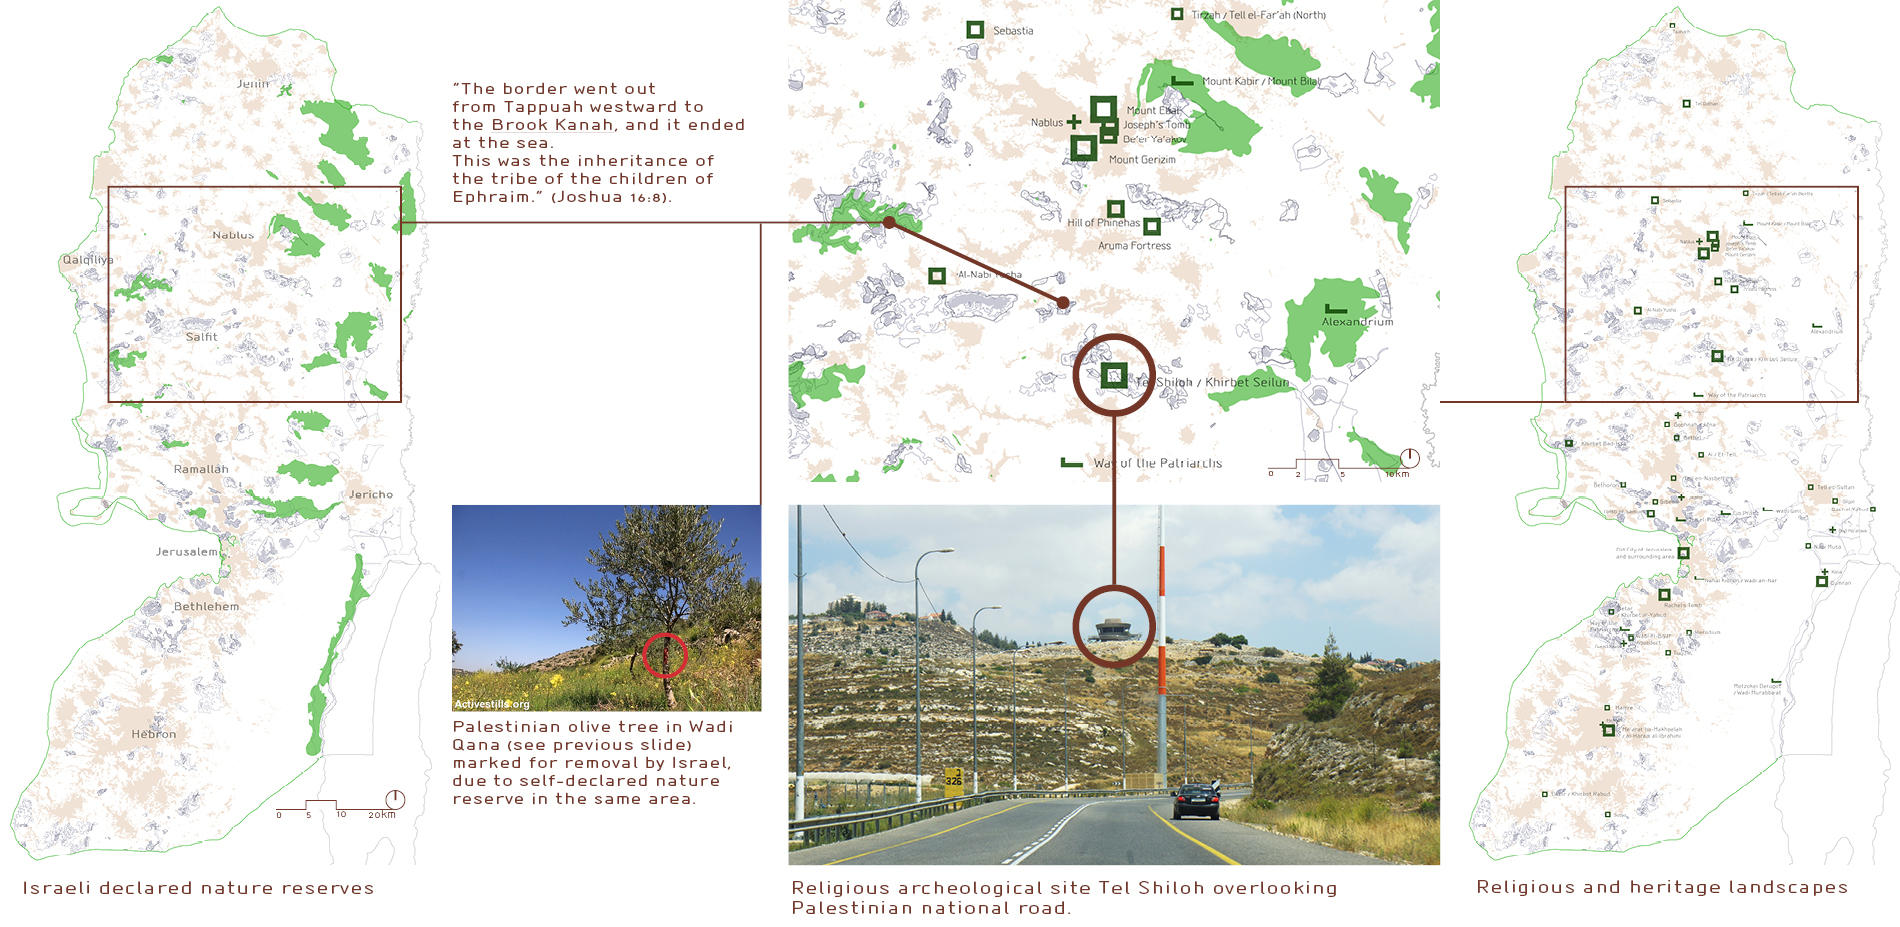 3. Settlement by landscape - example : Wadi Qana  |  3.1. nature reserves acts of declaration  |  3.2. landscape of religion